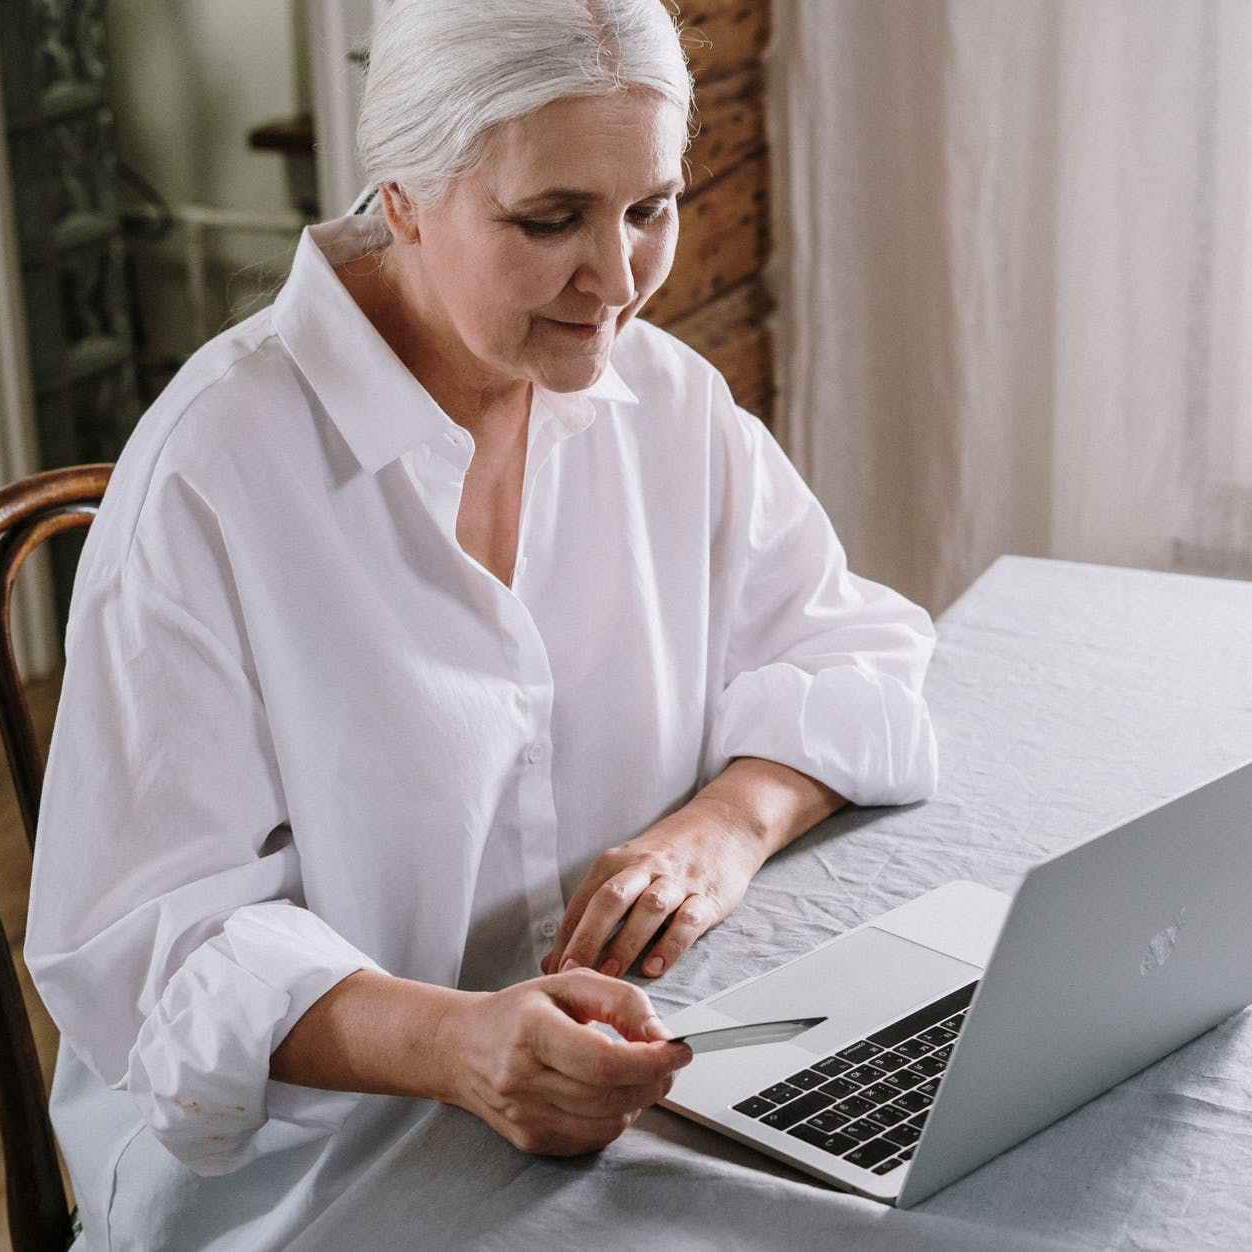 an old woman using a laptop